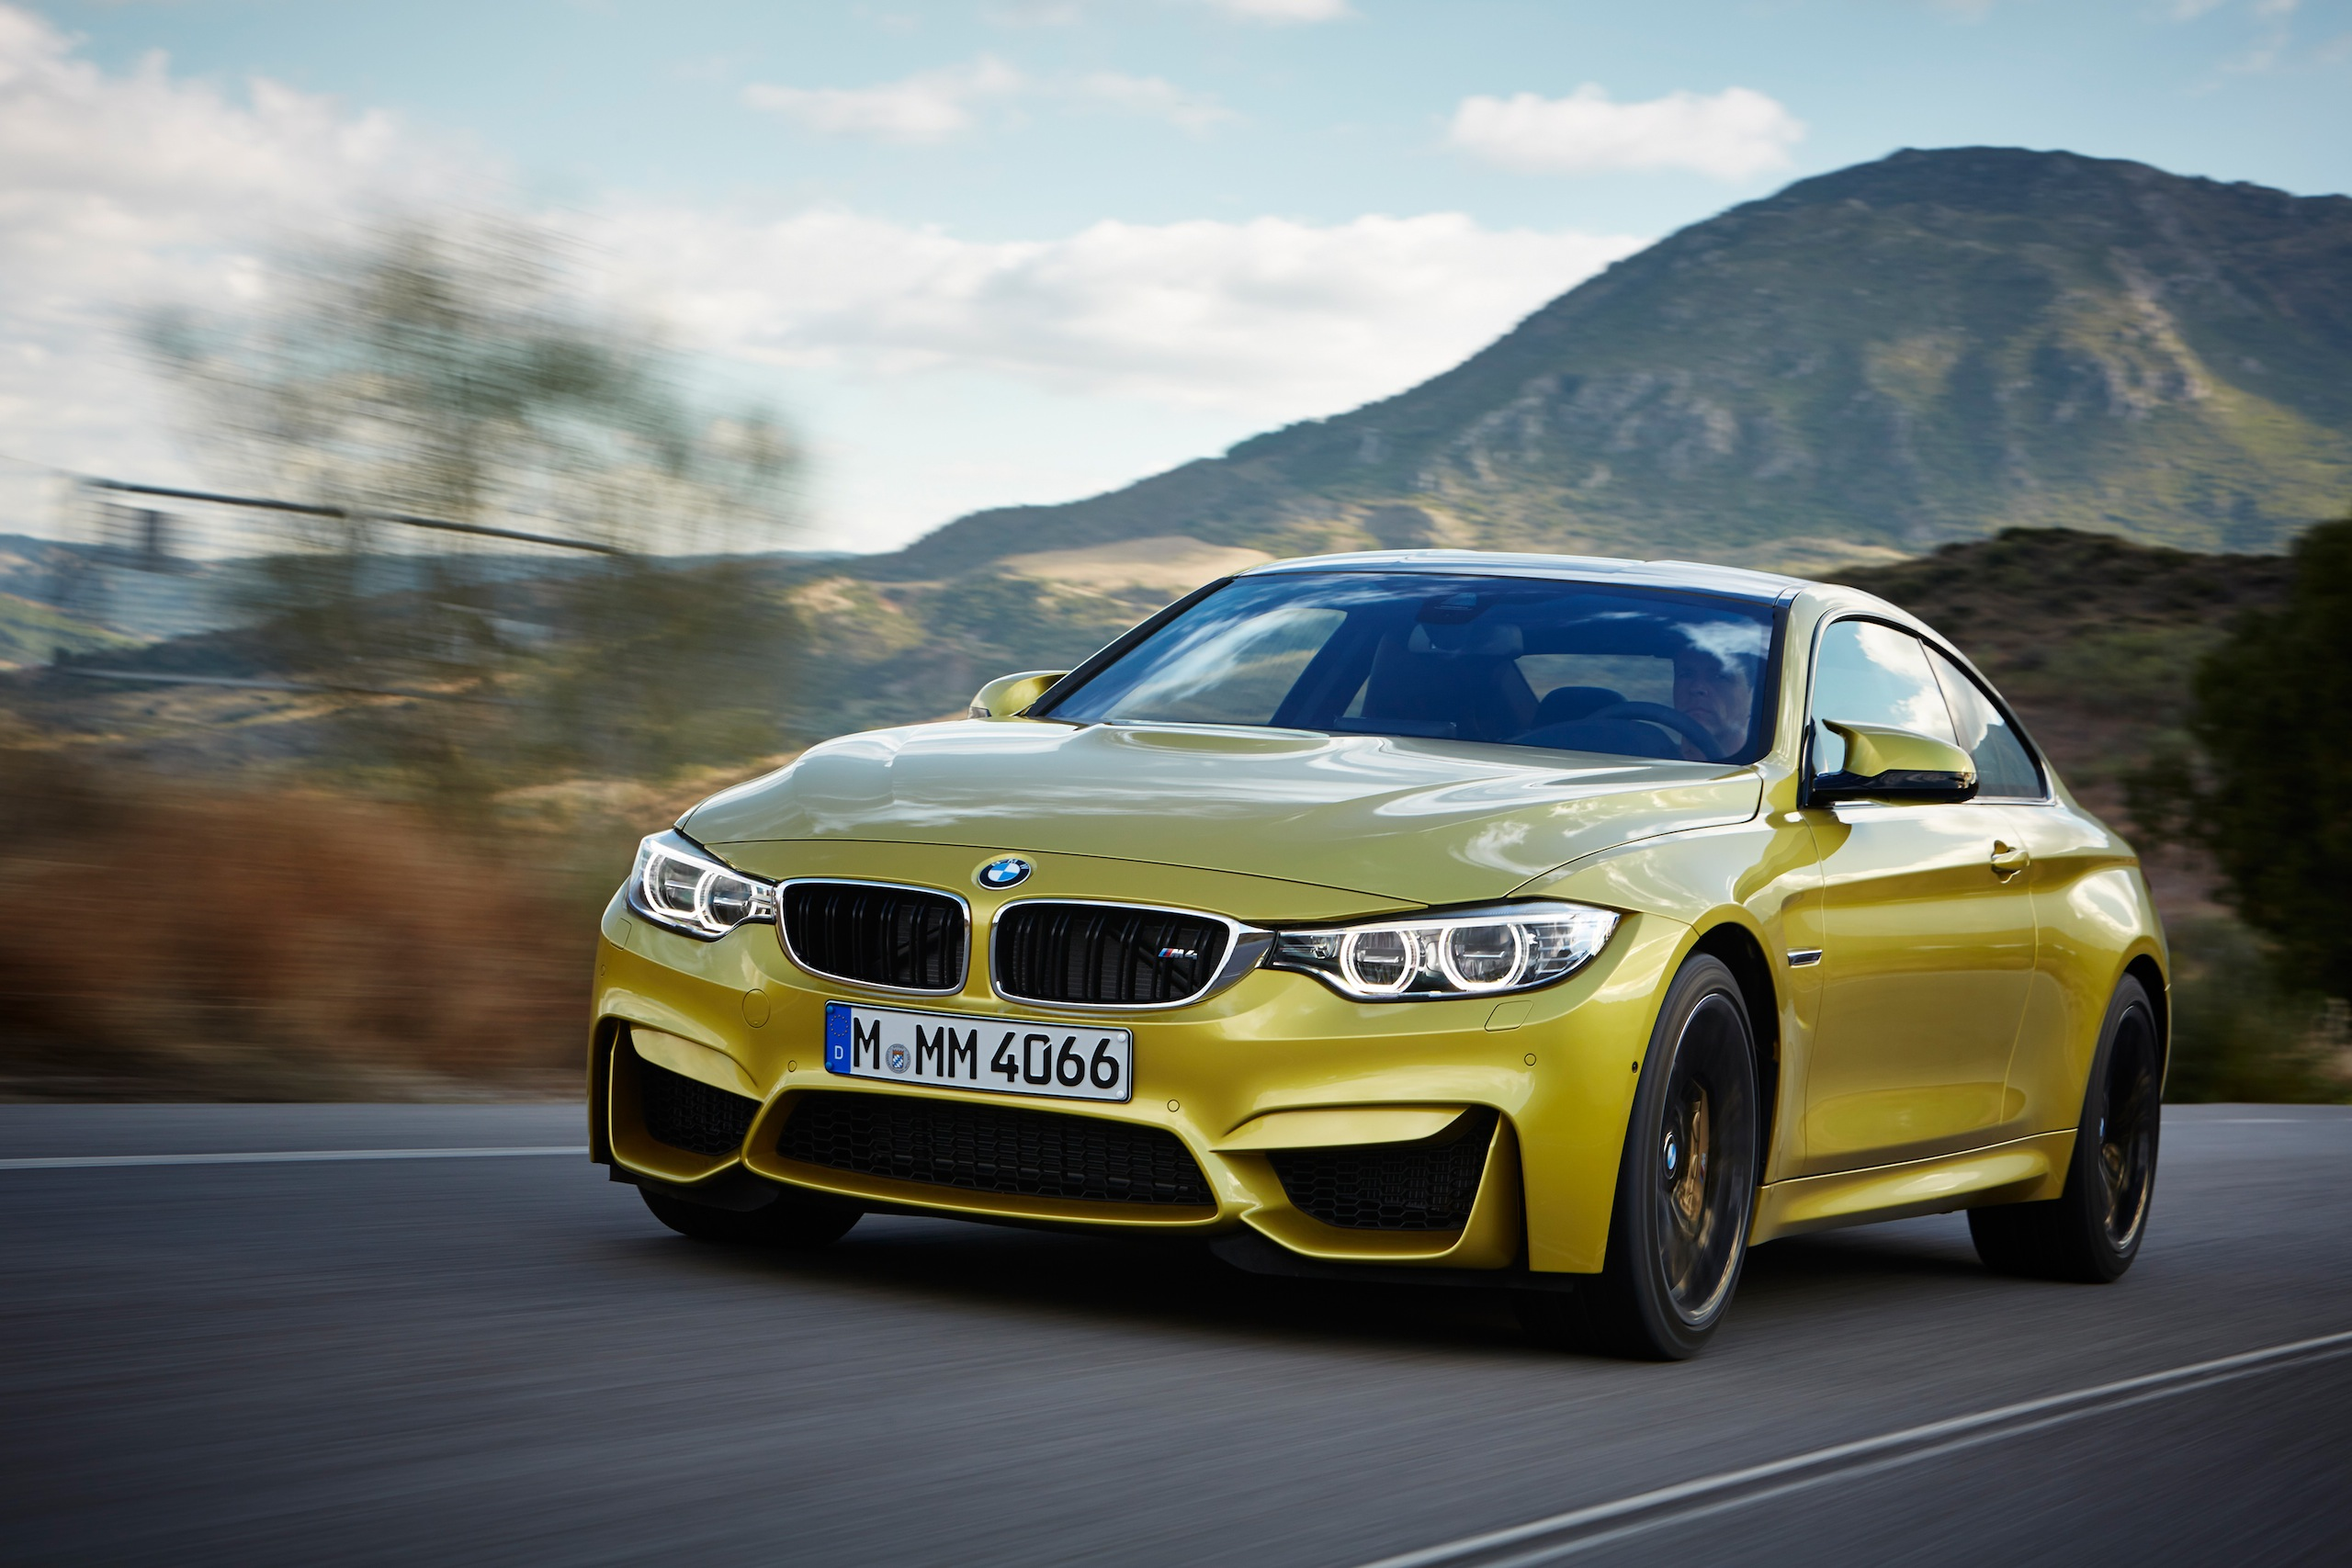 2015 bmw m4 coupe f82 official specs wallpapers videos photos info. Black Bedroom Furniture Sets. Home Design Ideas